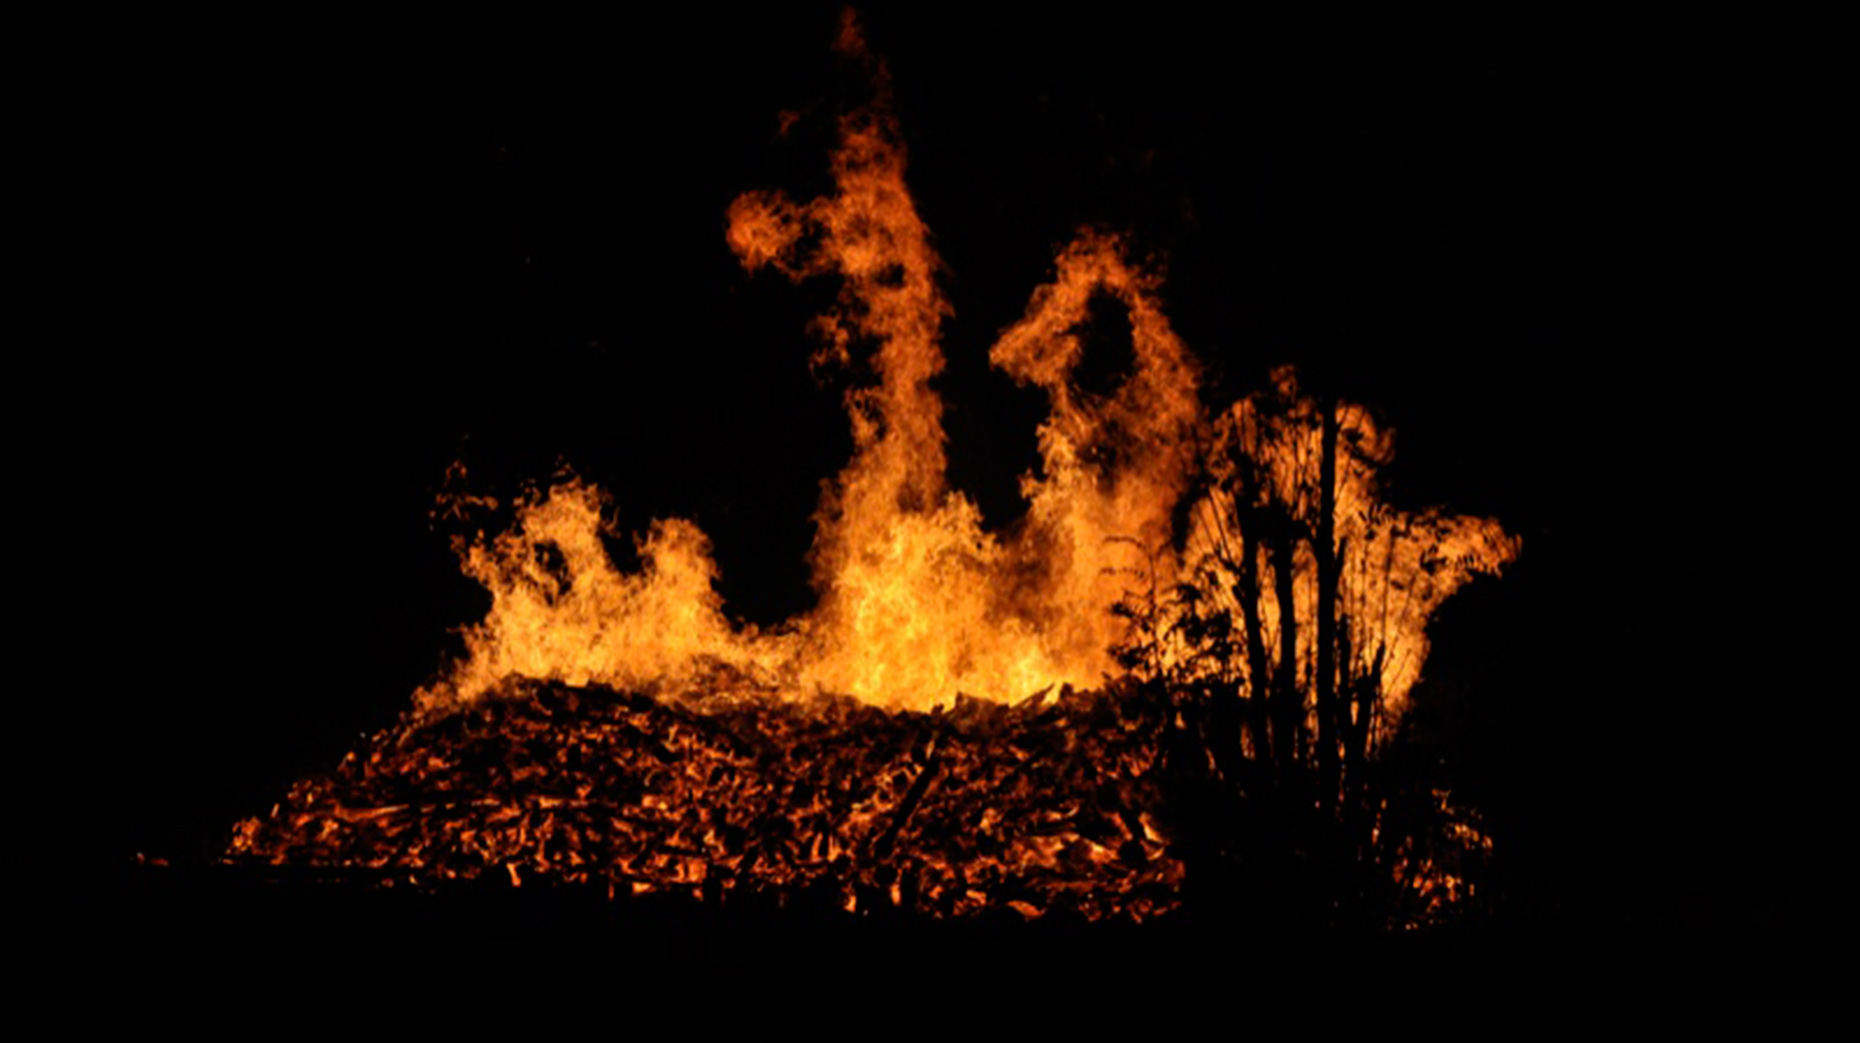 Fire crews battle 800 straw bales ablaze in Waddington